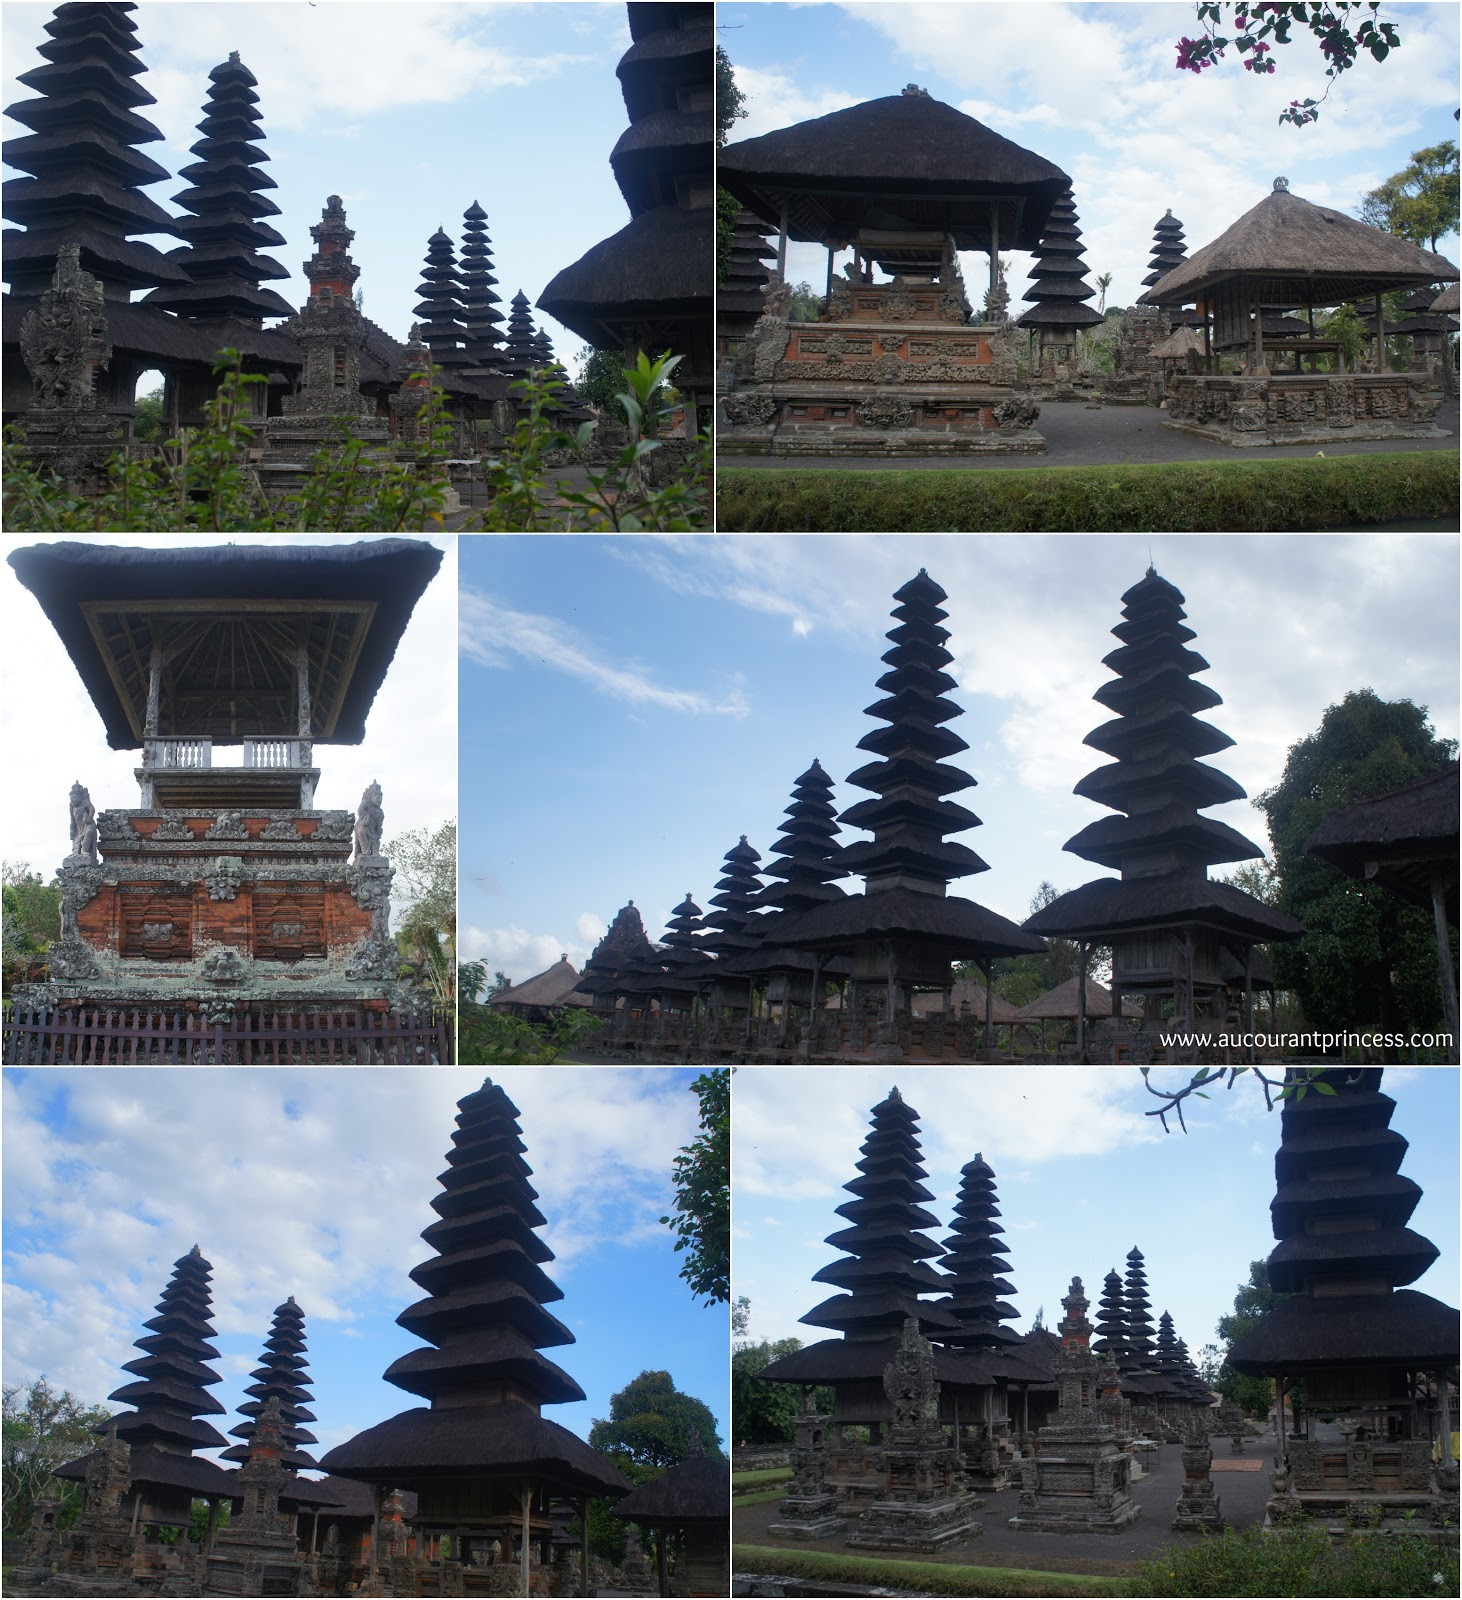 Bali Whole Day Tour: Things To Do In Bali, Indonesia